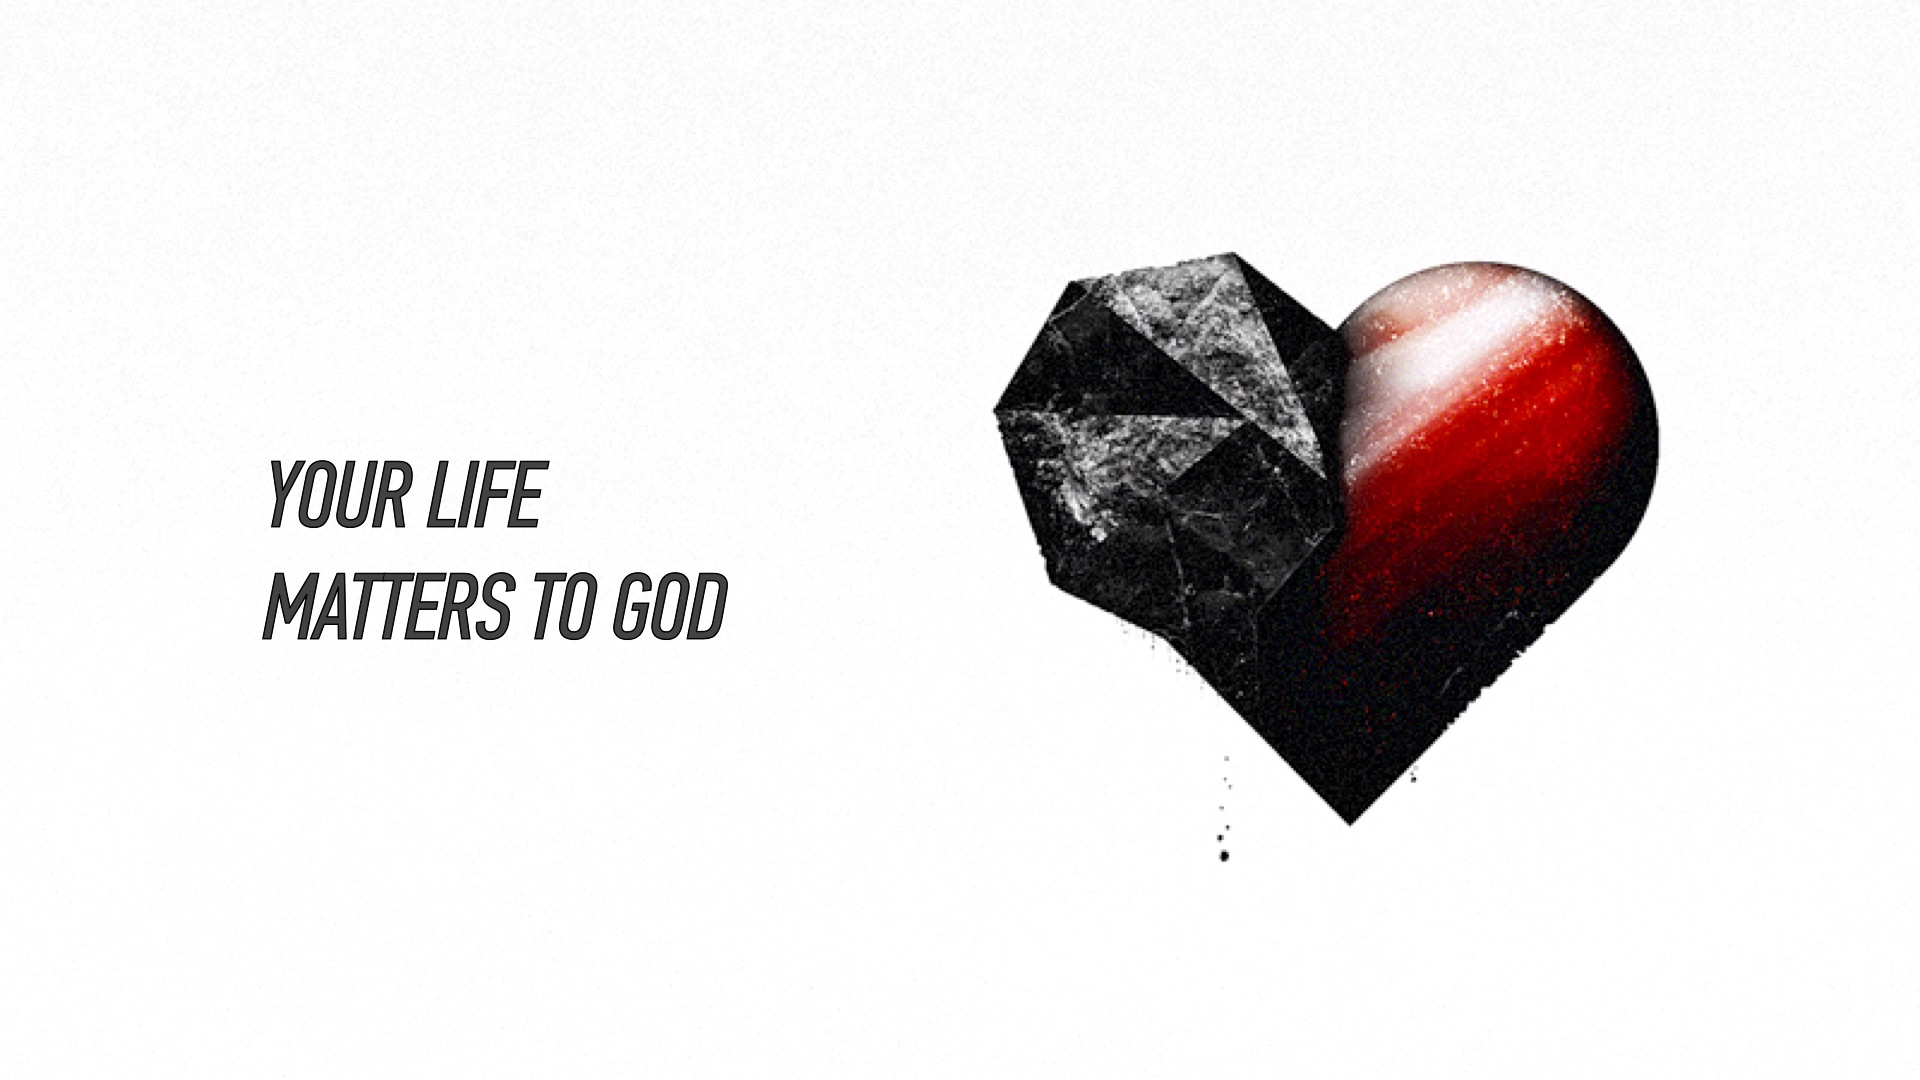 20160327 Your Life Matters To God.jpg